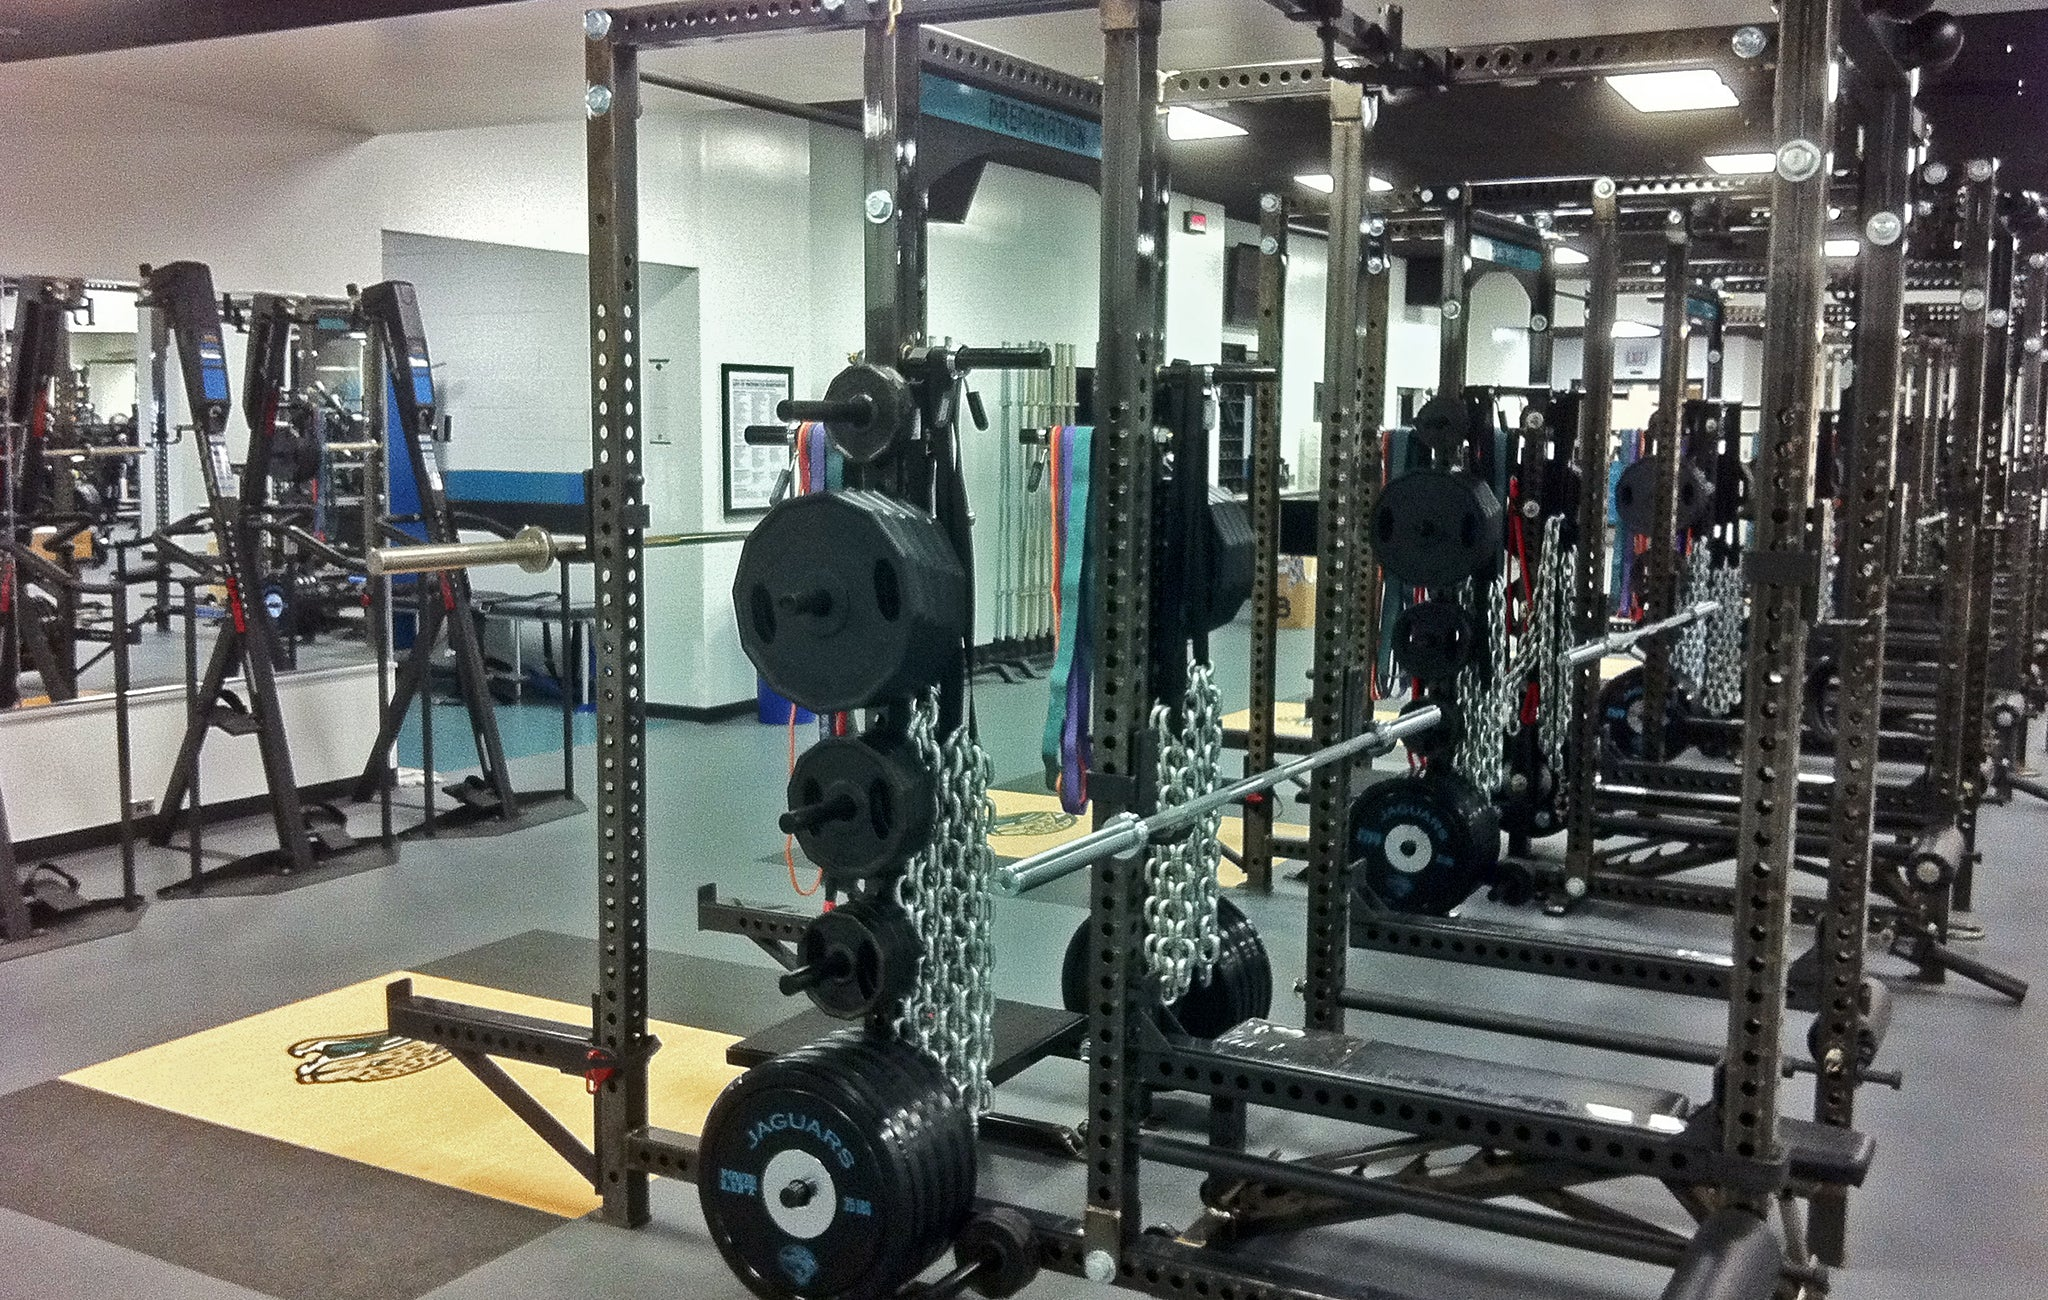 Professional football strength training facilities